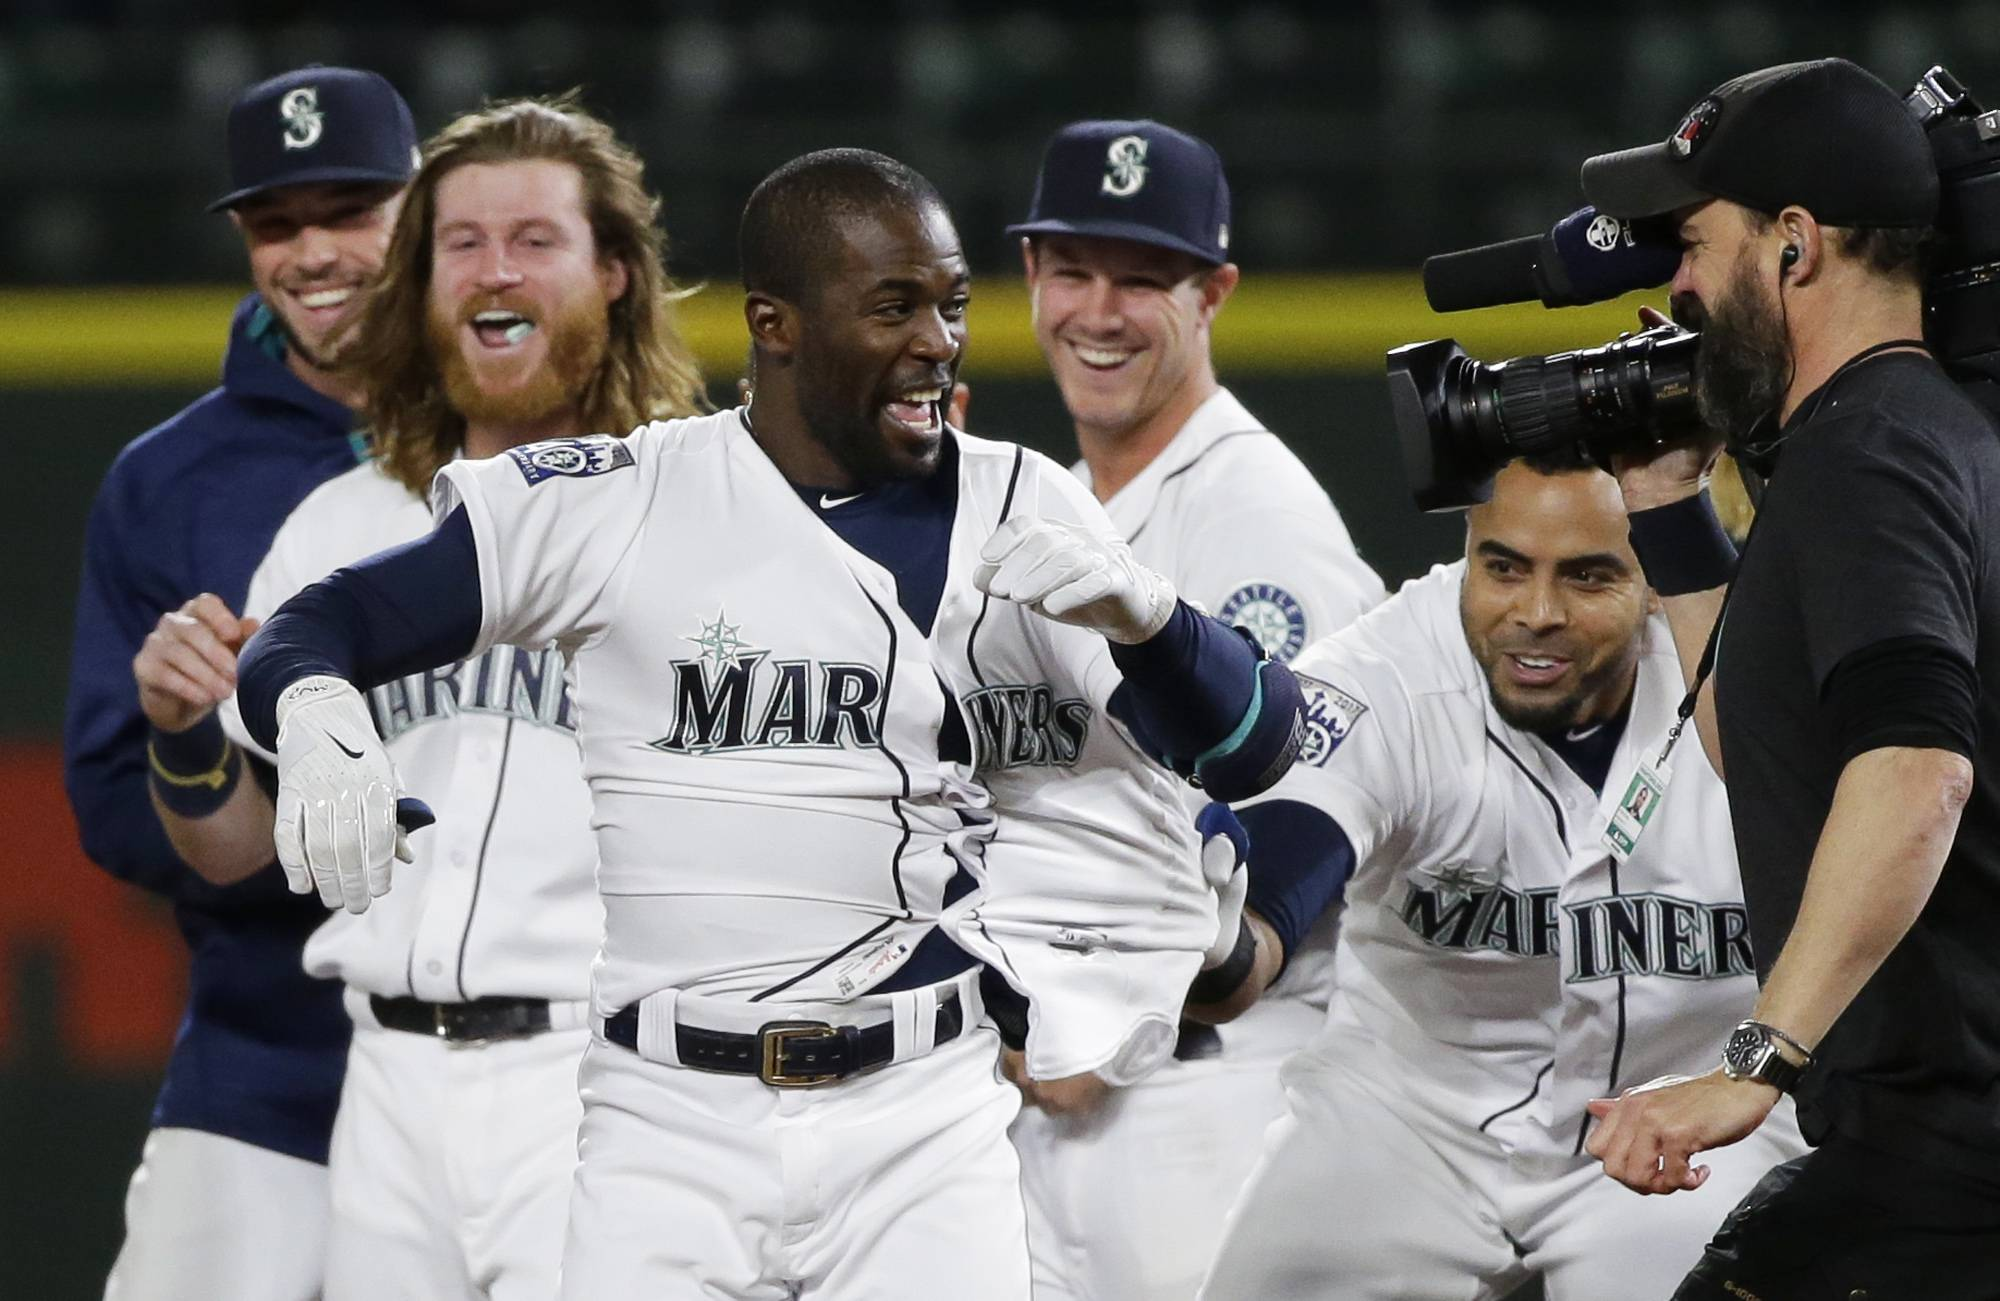 Seattle Mariners' Guillermo Heredia, front, has his jersey tugged by teammate Nelson Cruz, right, after Herdia hit a walk-off RBI single to score Jarrod Dyson and give the Mariners a 5-4 win over the Chicago White Sox in a baseball game, Thursday, May 18, 2017, in Seattle.